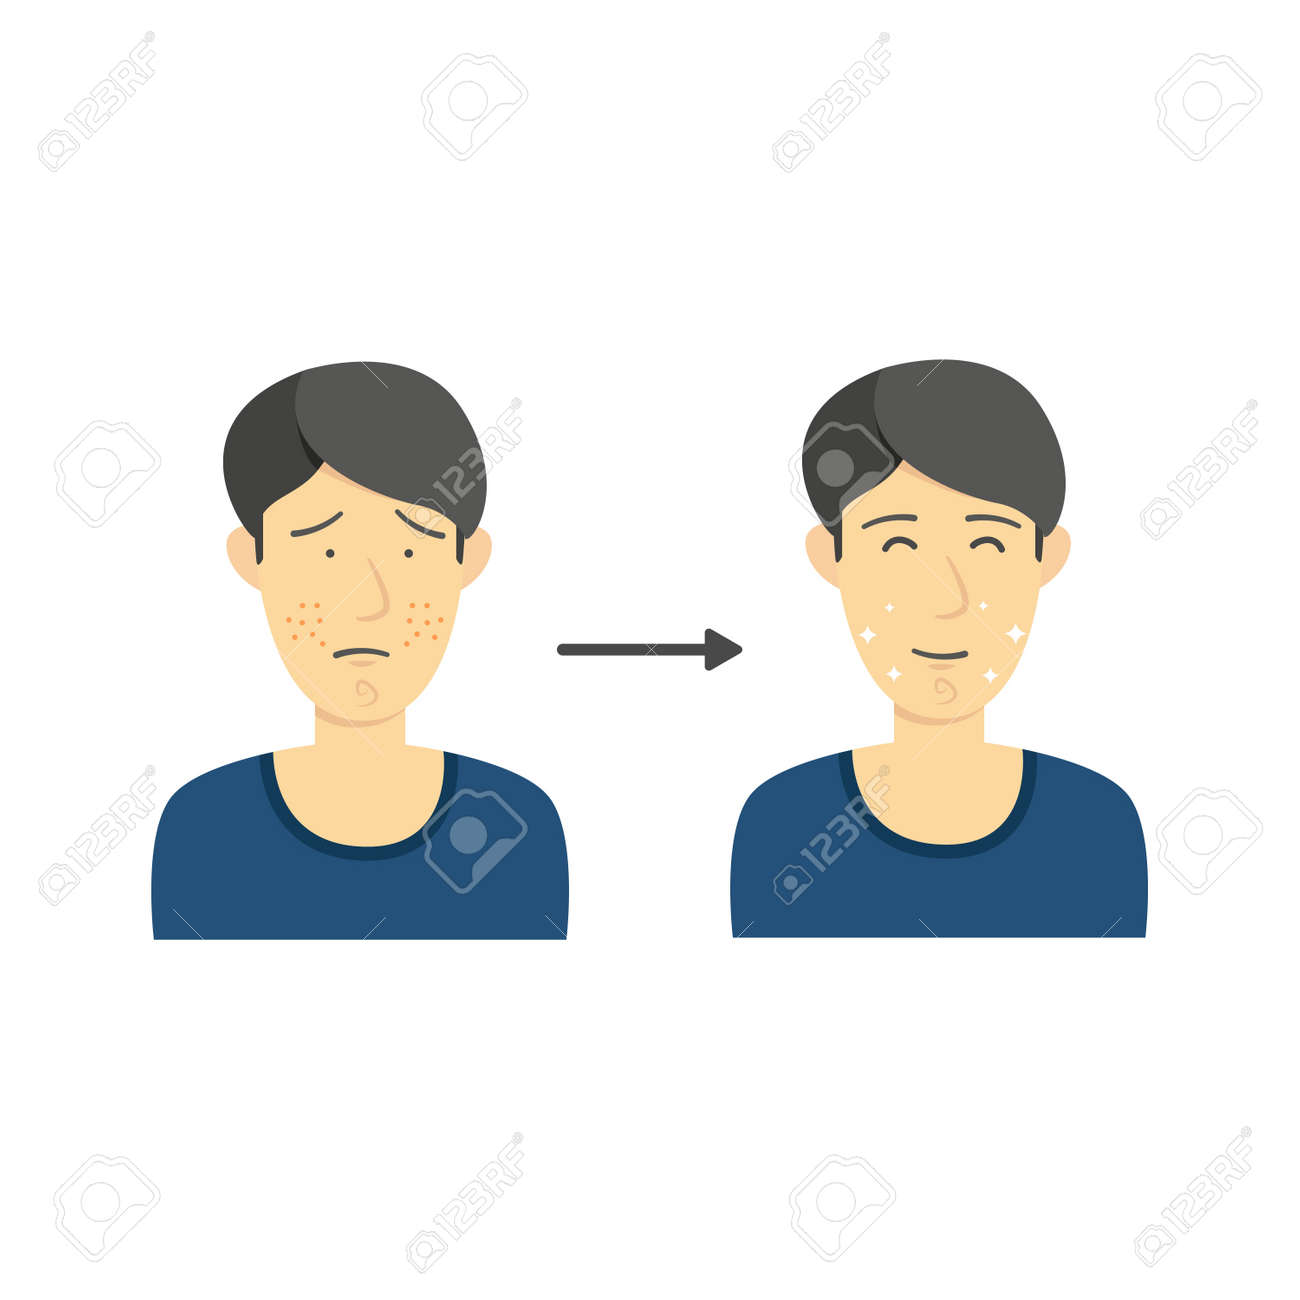 black hair male from acne face to clean face without acne diagram  infographic illustration stock vector